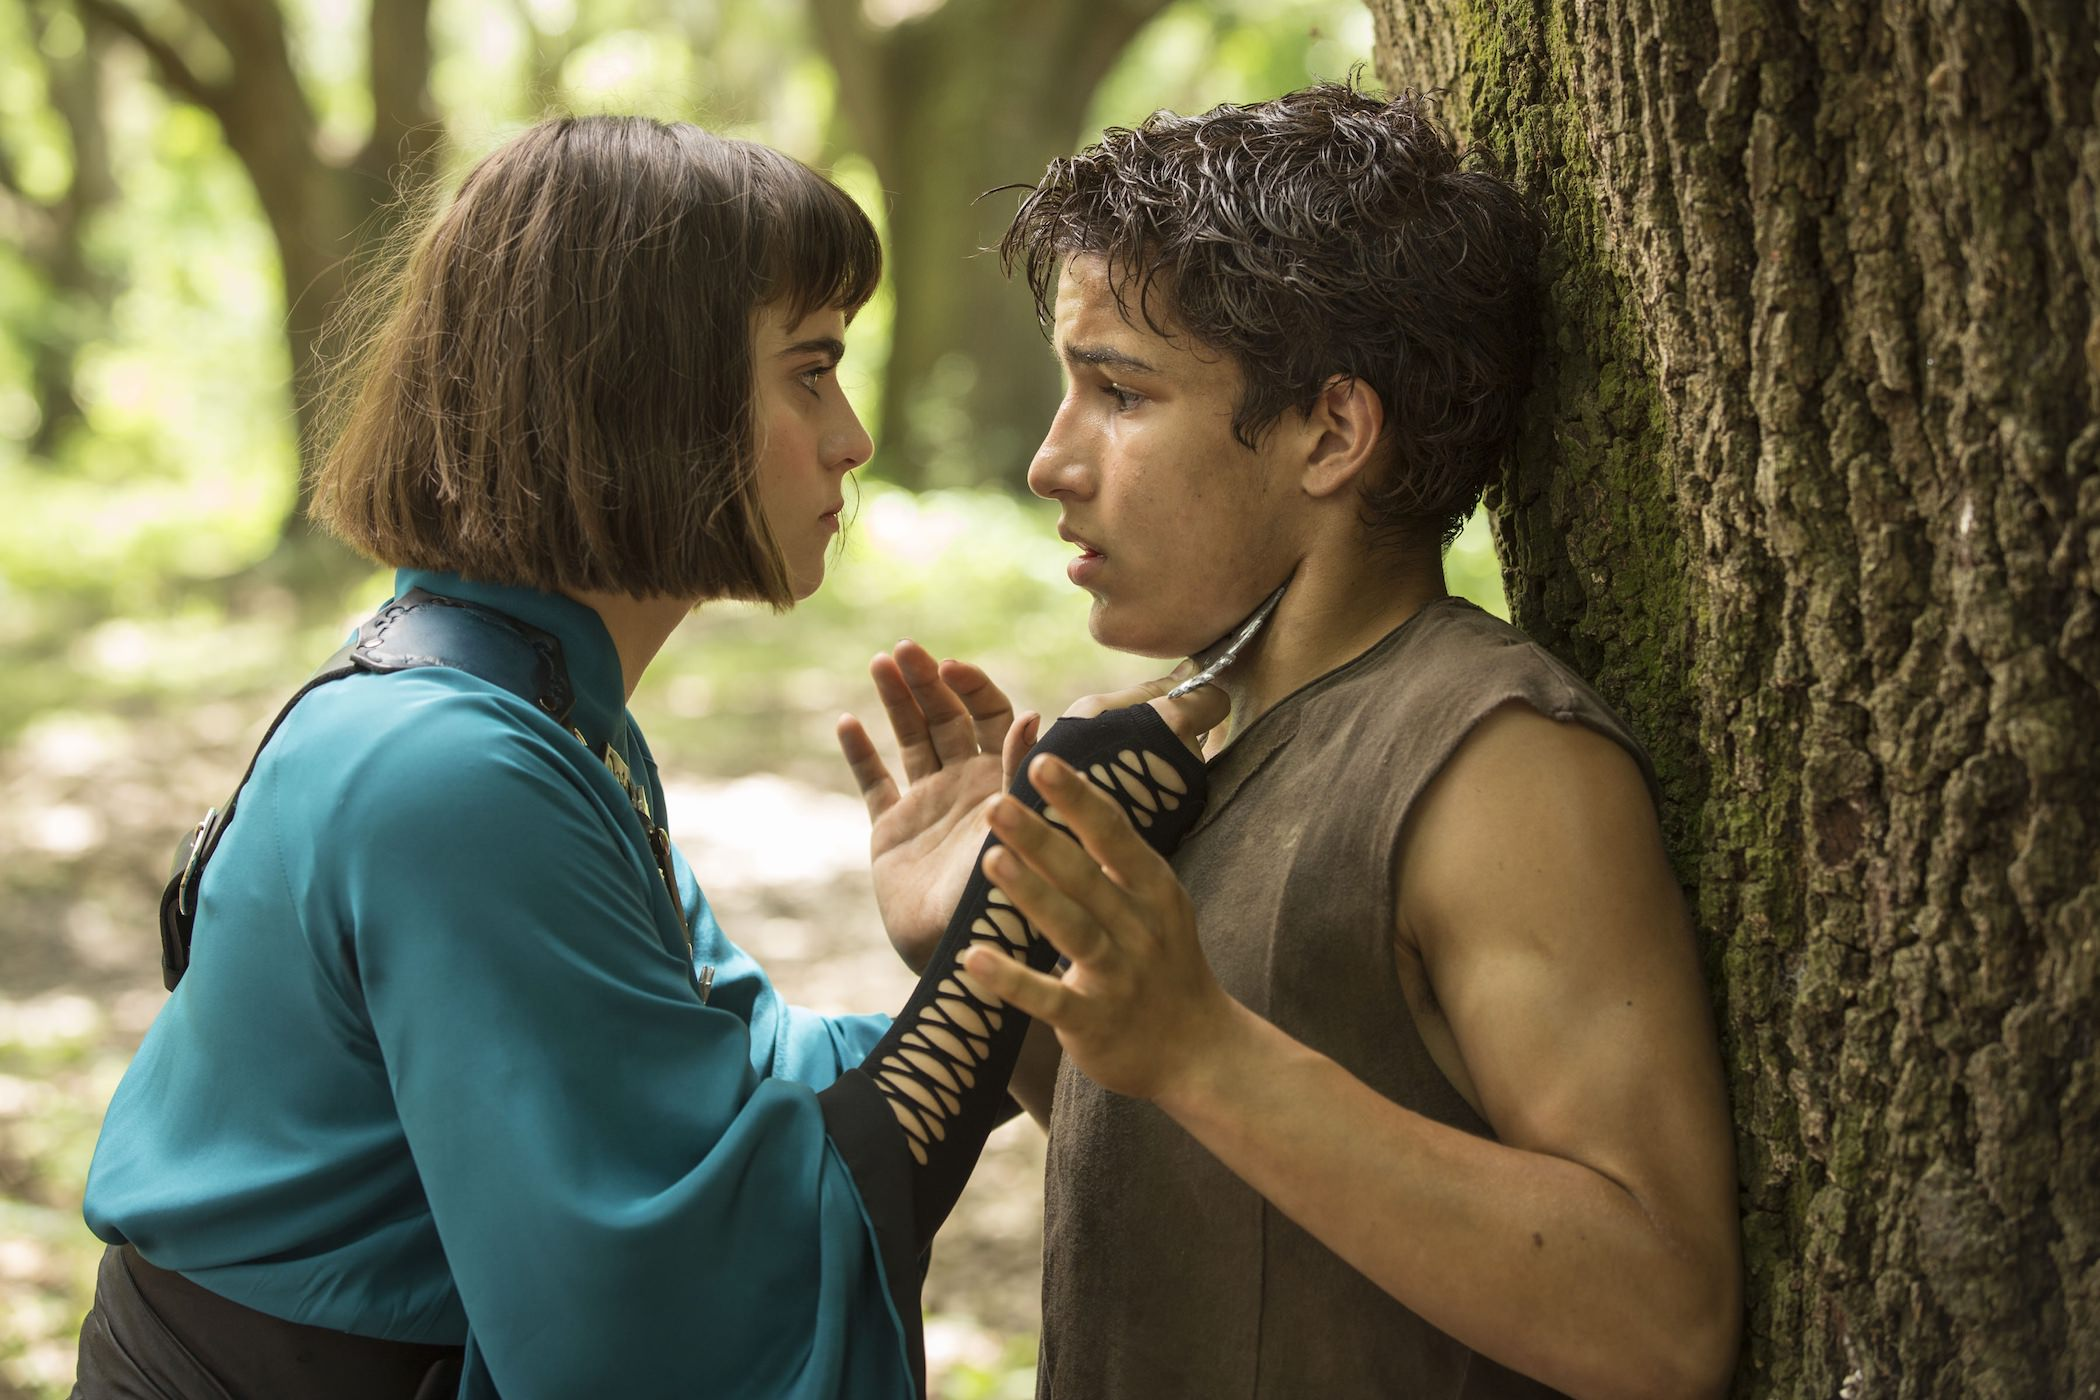 into-the-badlands-aramis-knight-ally-ioannides